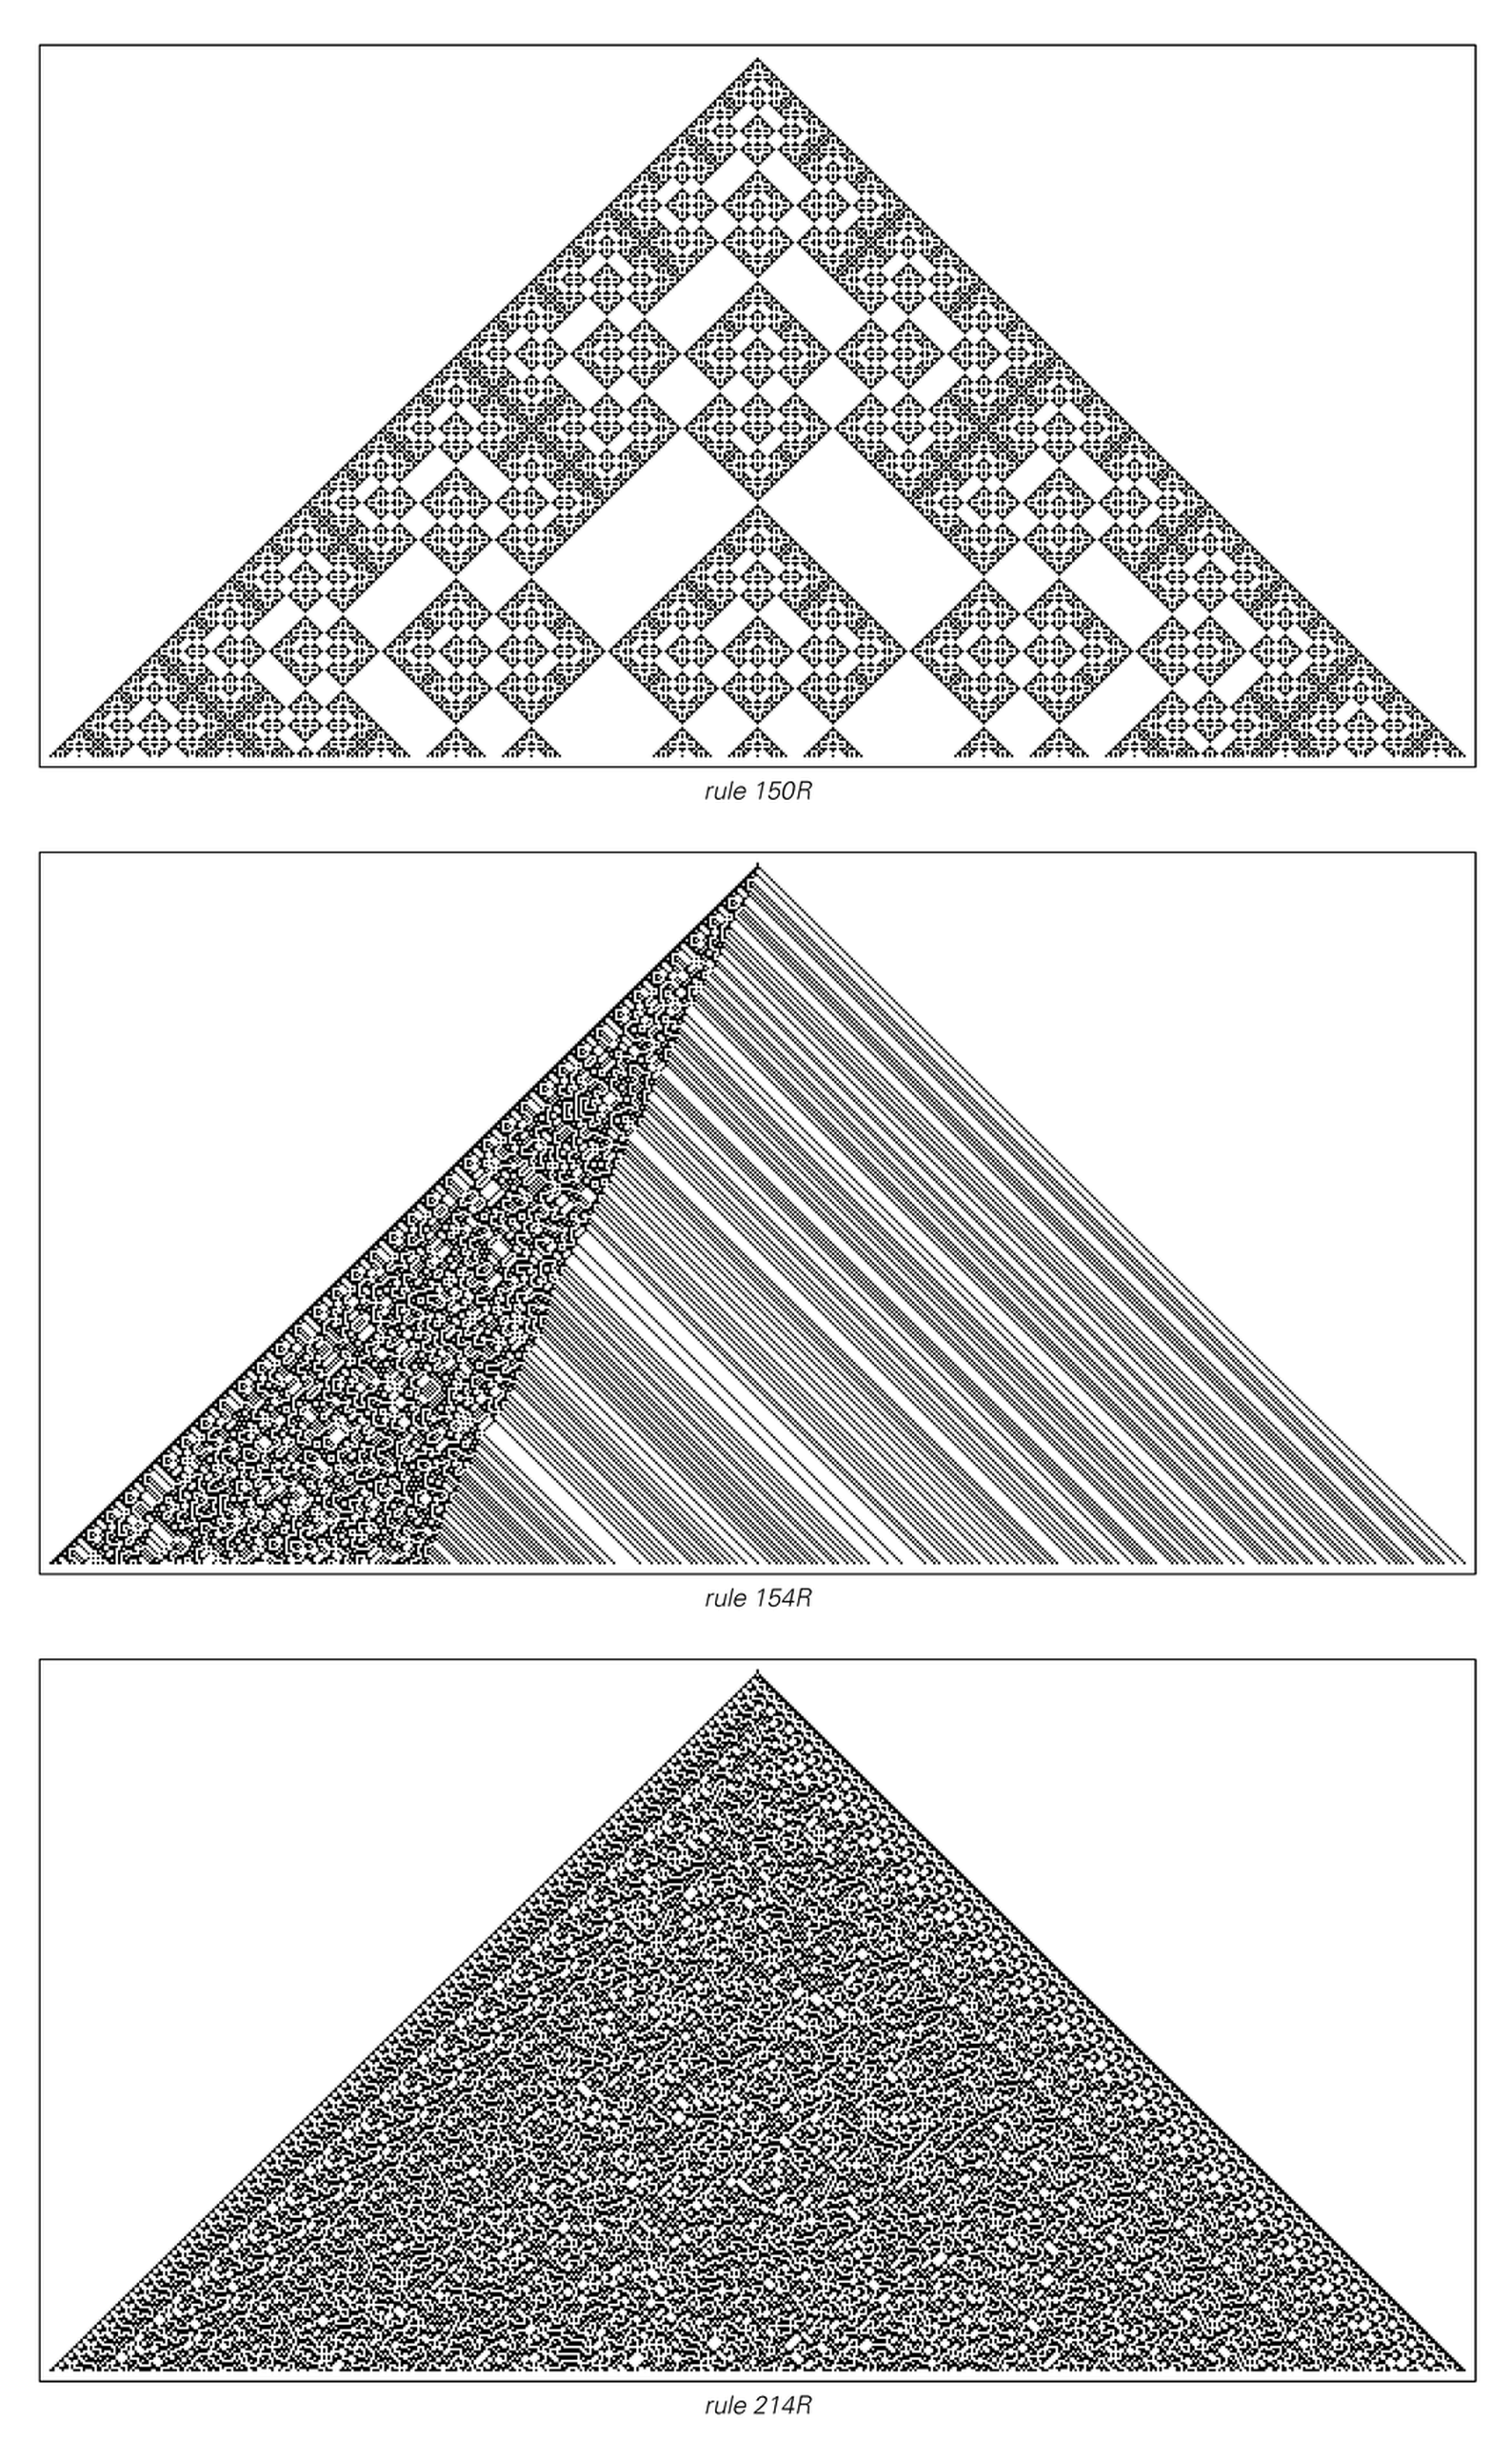 Evolution of three reversible cellular automata for 300 steps